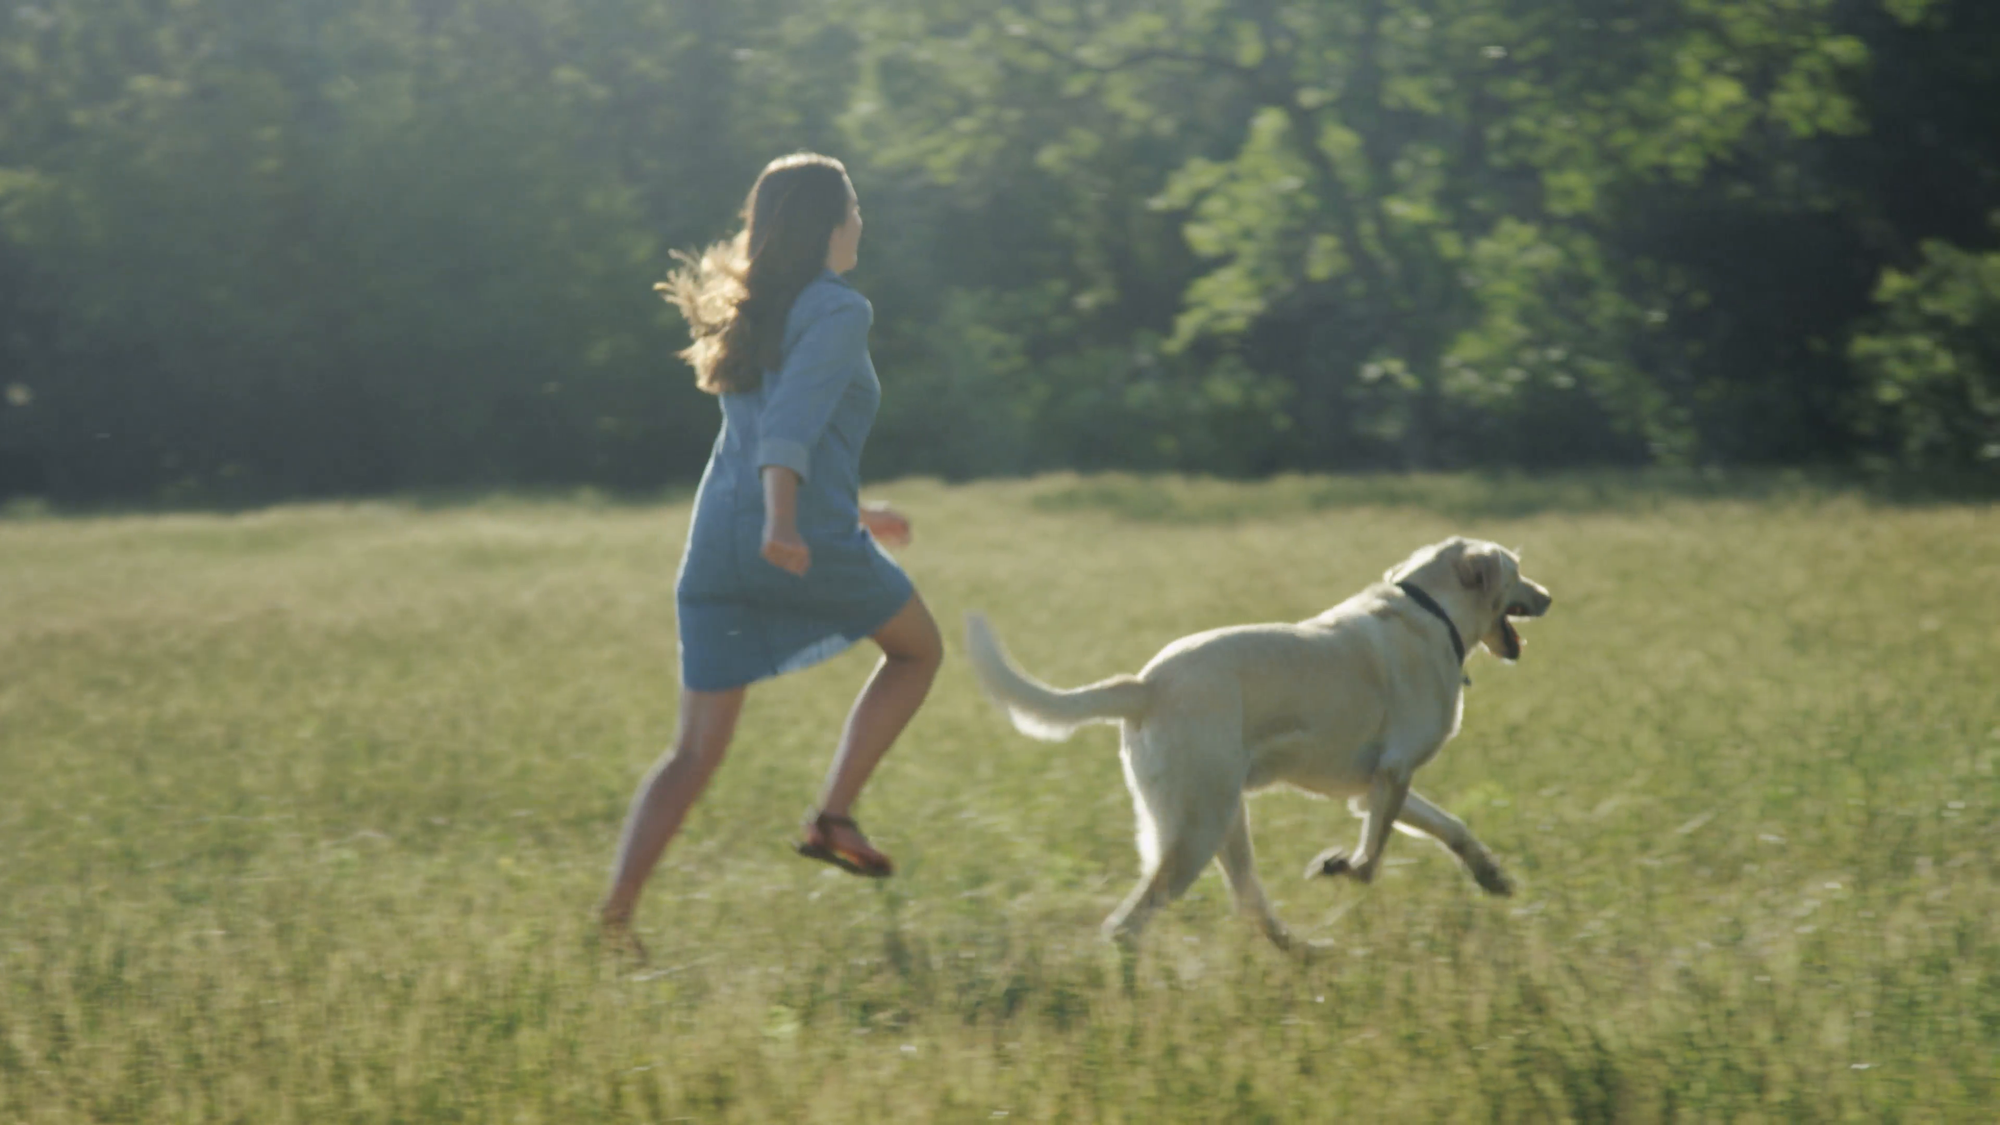 girl-running-through-field-with-dog_ed-kgrvkl__F0004